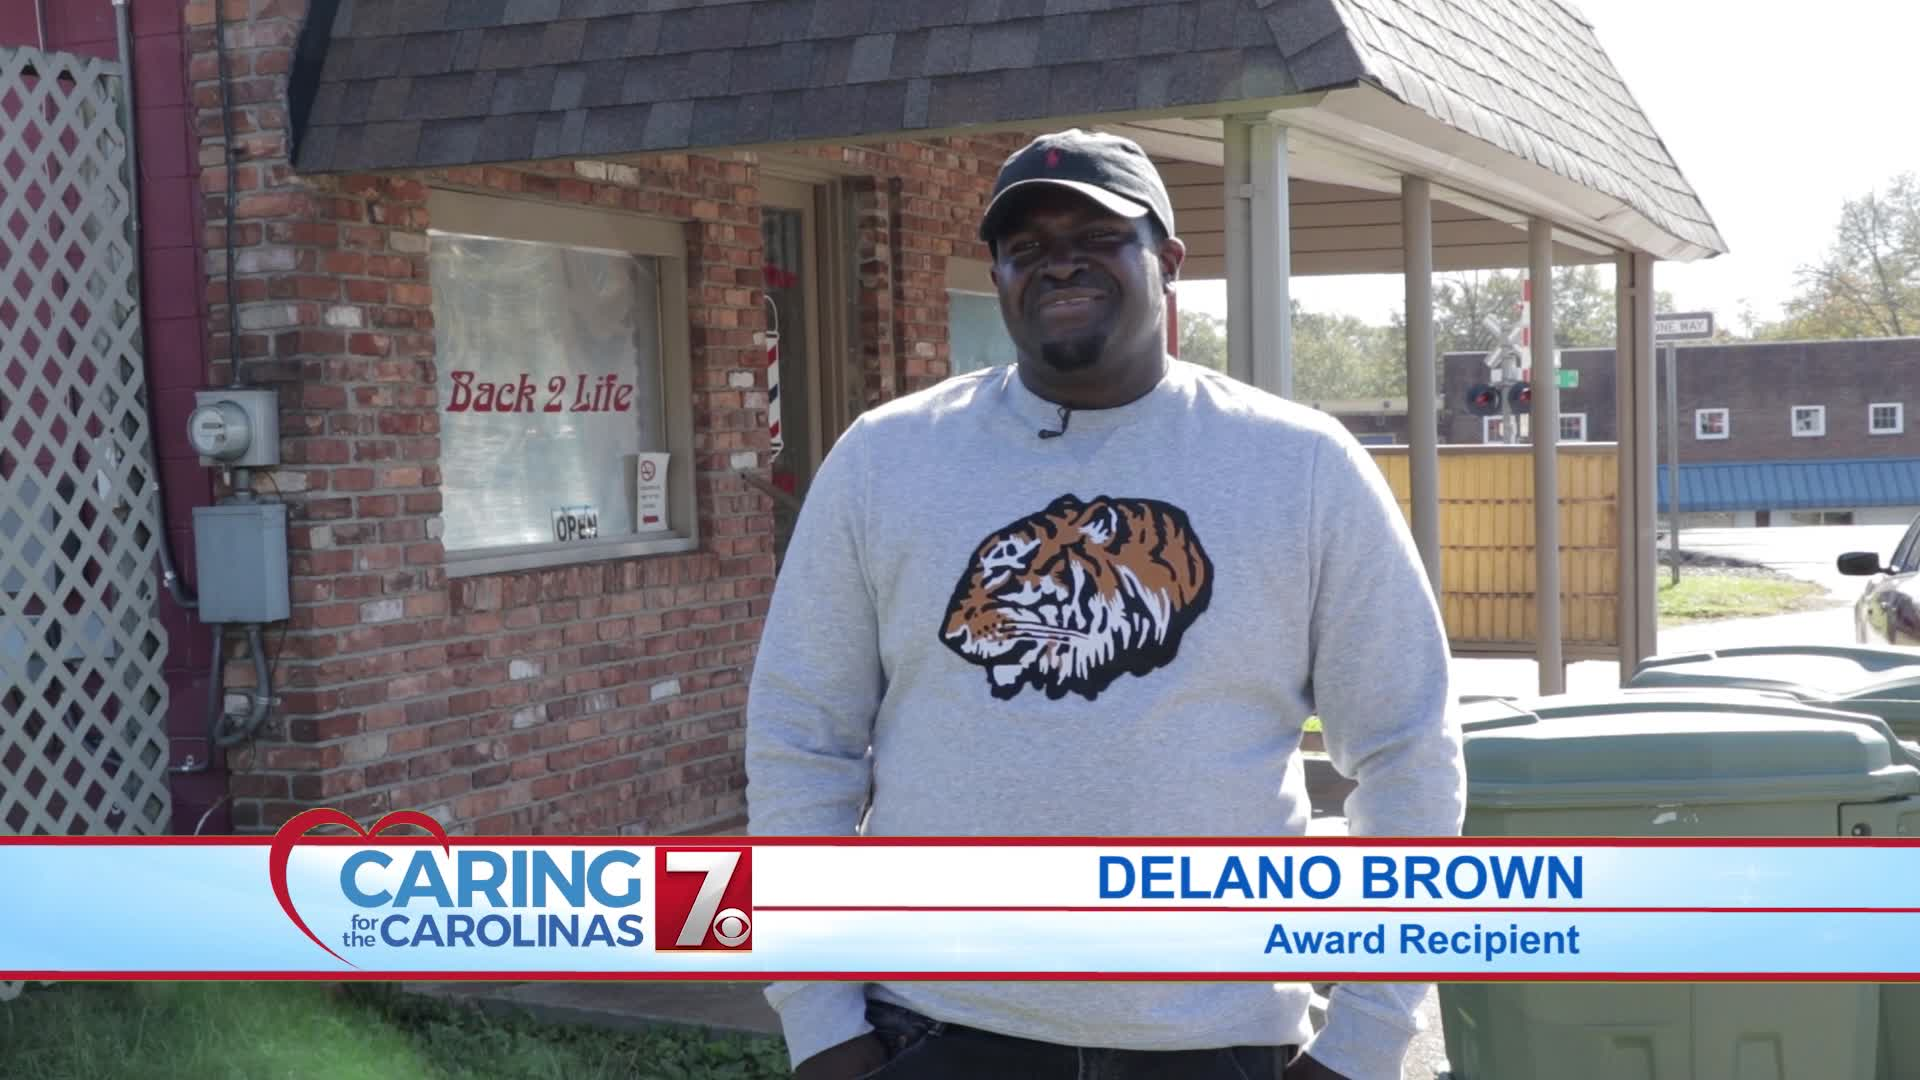 Delano Brown